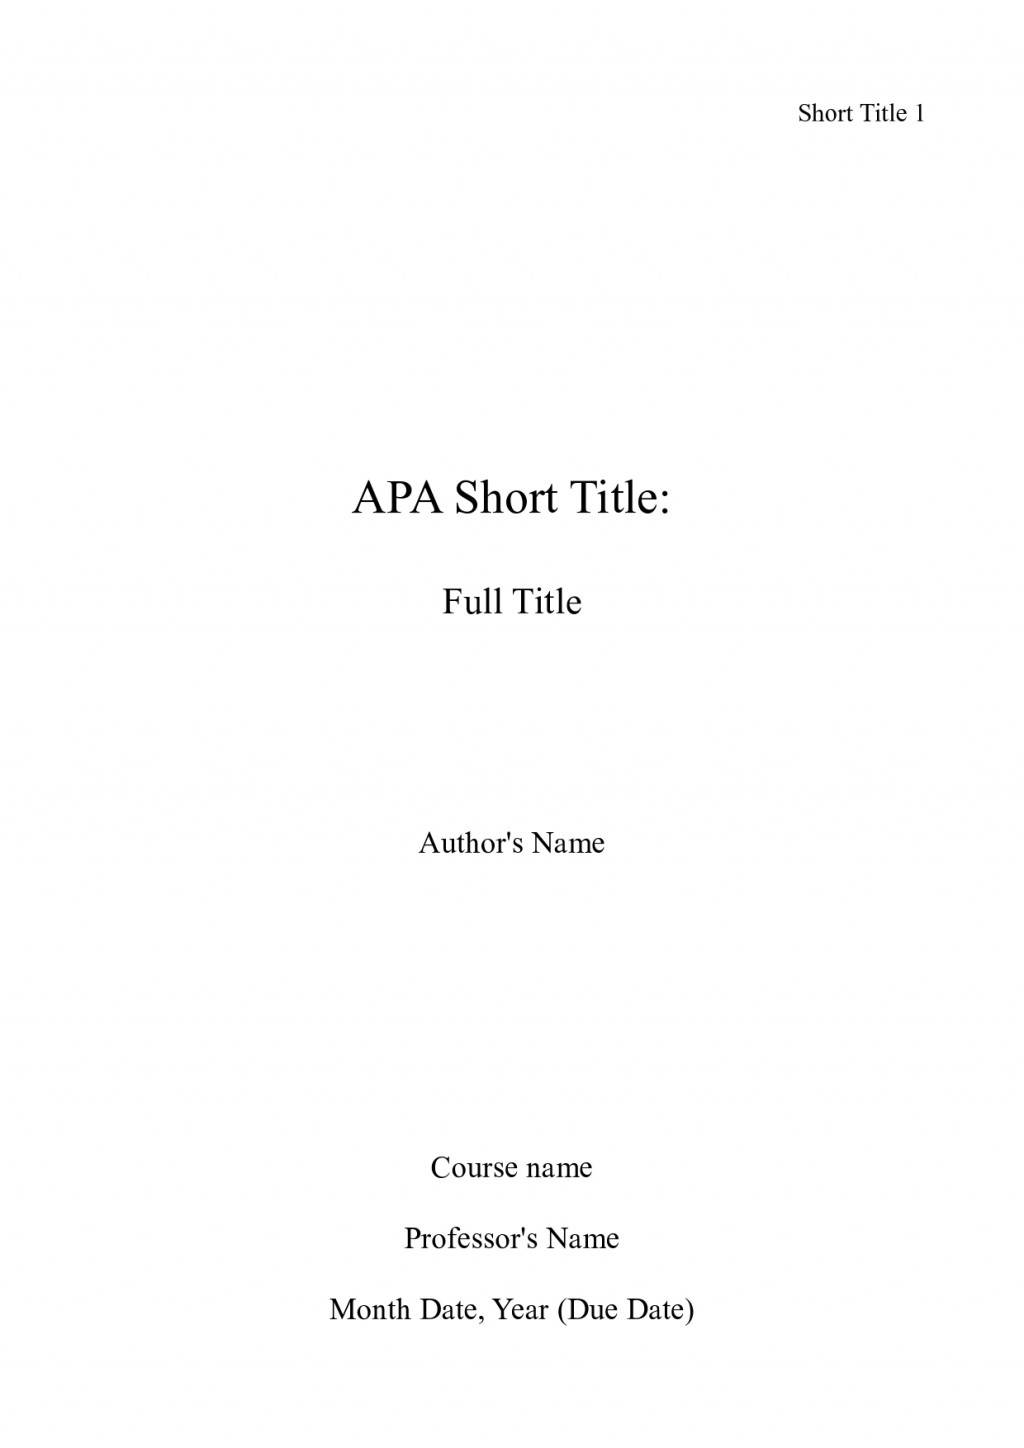 001 Essay Example How To Write Cover Page For An Apa Title Awesome A Contents Reference Mla Bibliography Large